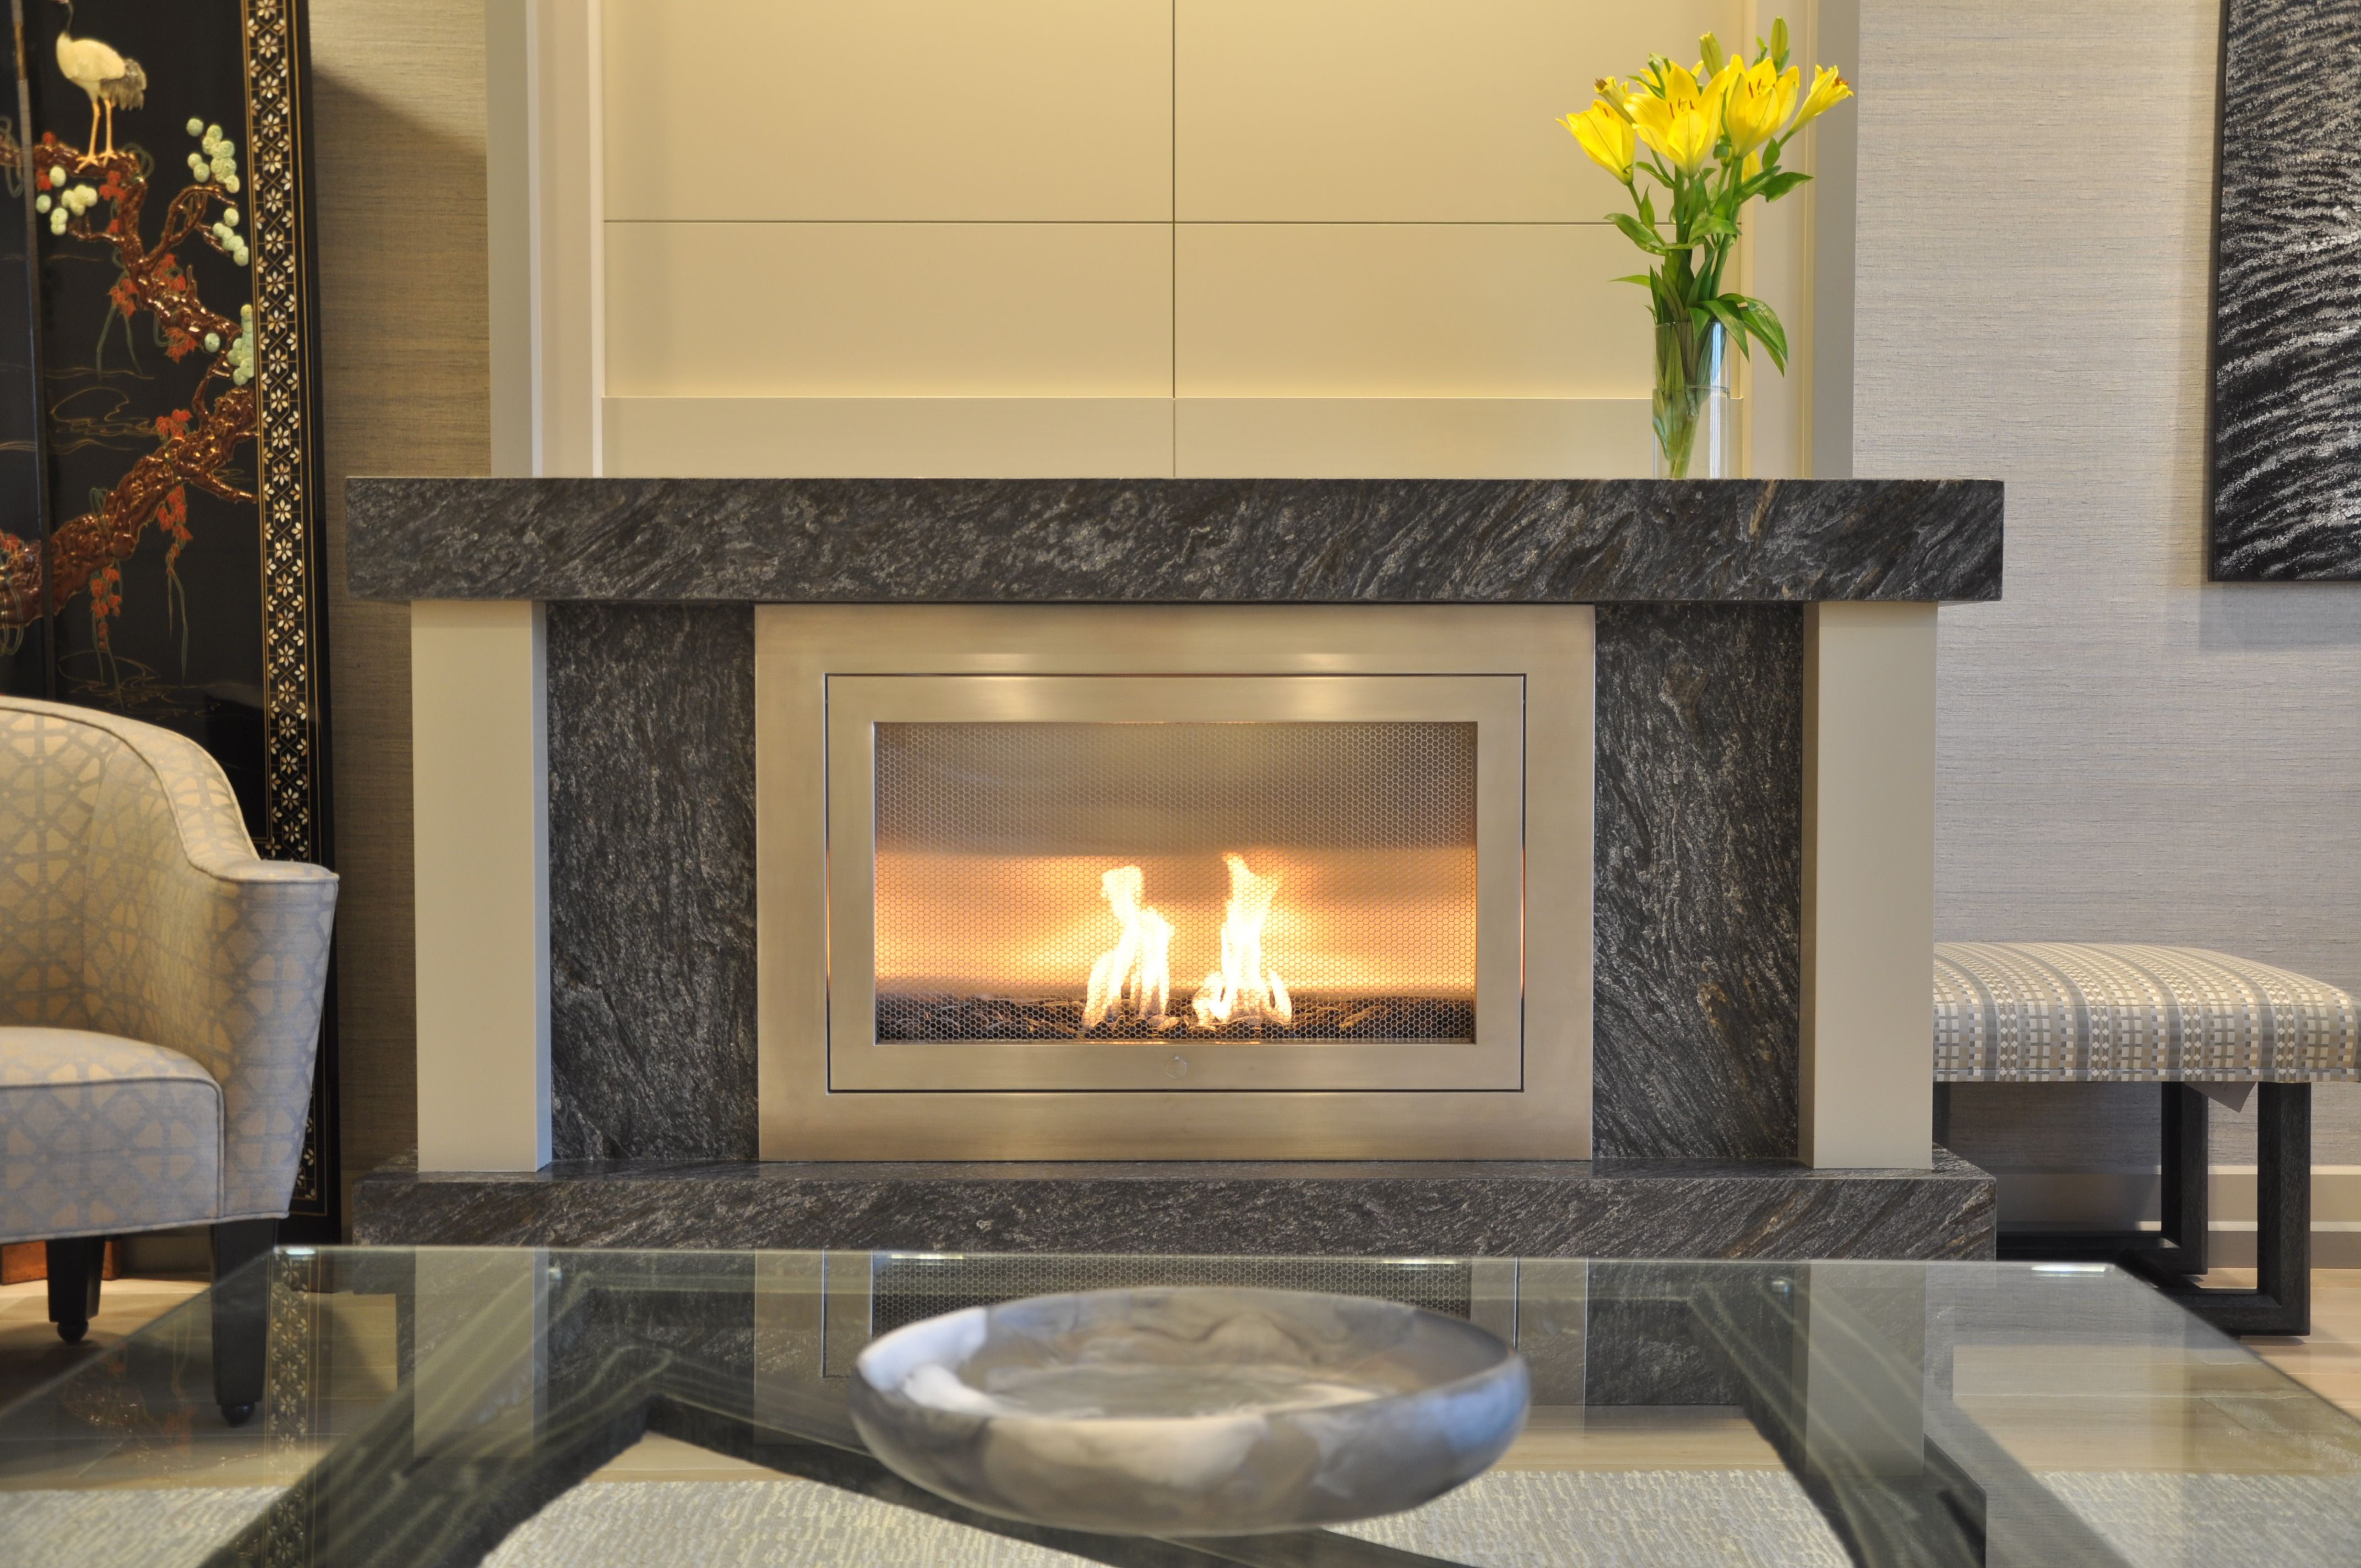 Linear Modern Stainless Steel Hearth Cabinet Ventless Fireplace